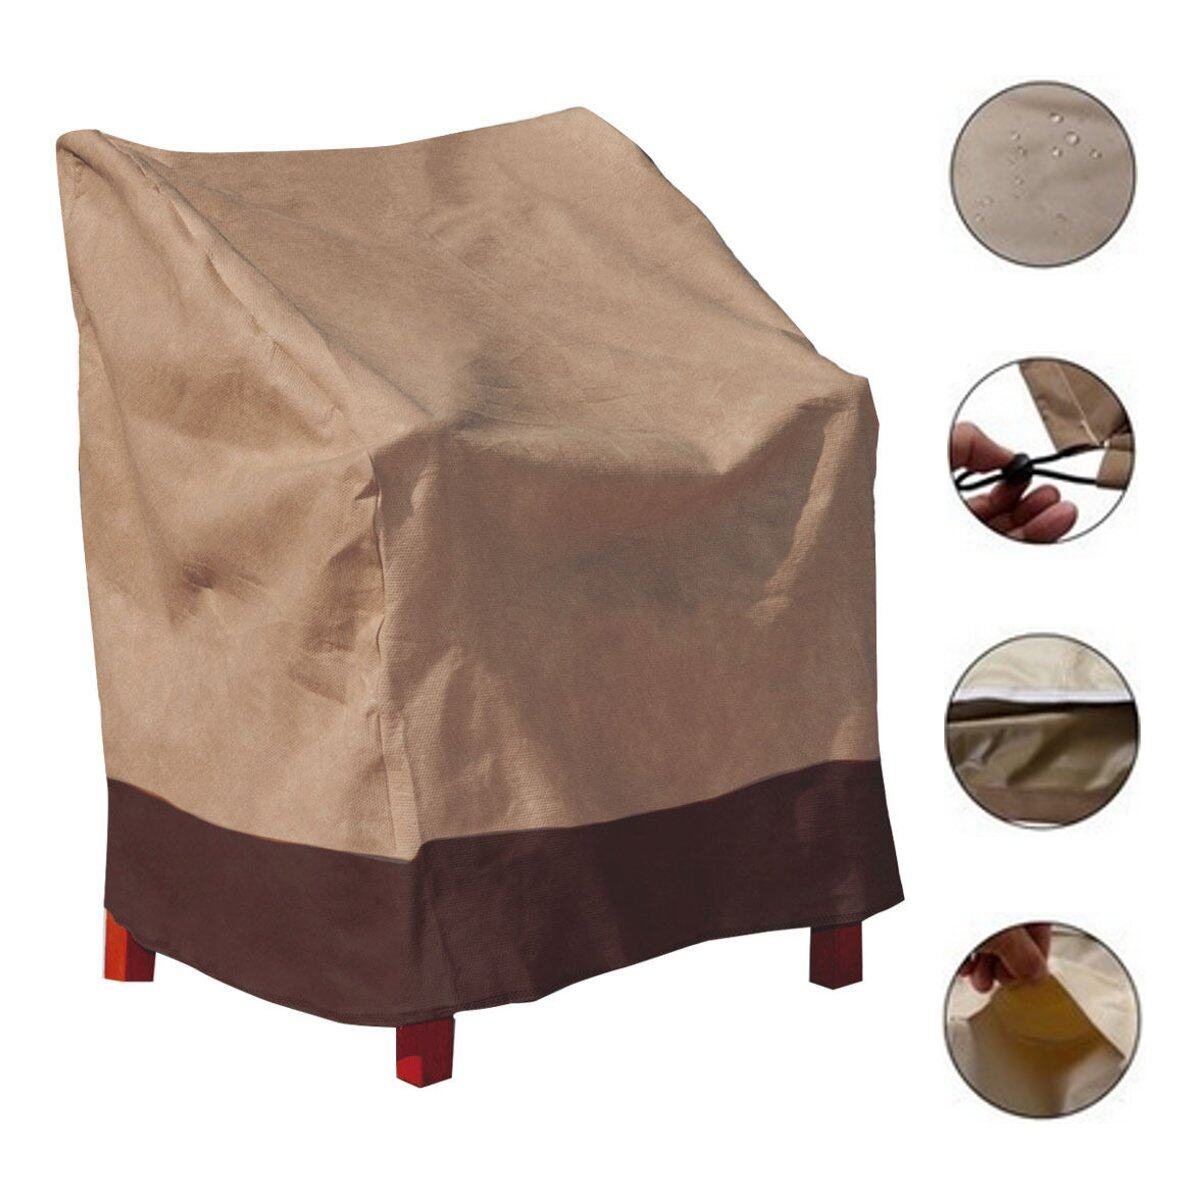 Waterproof Patio Single High Back Chair Covers Outdoor Yard Furniture Protection - intl